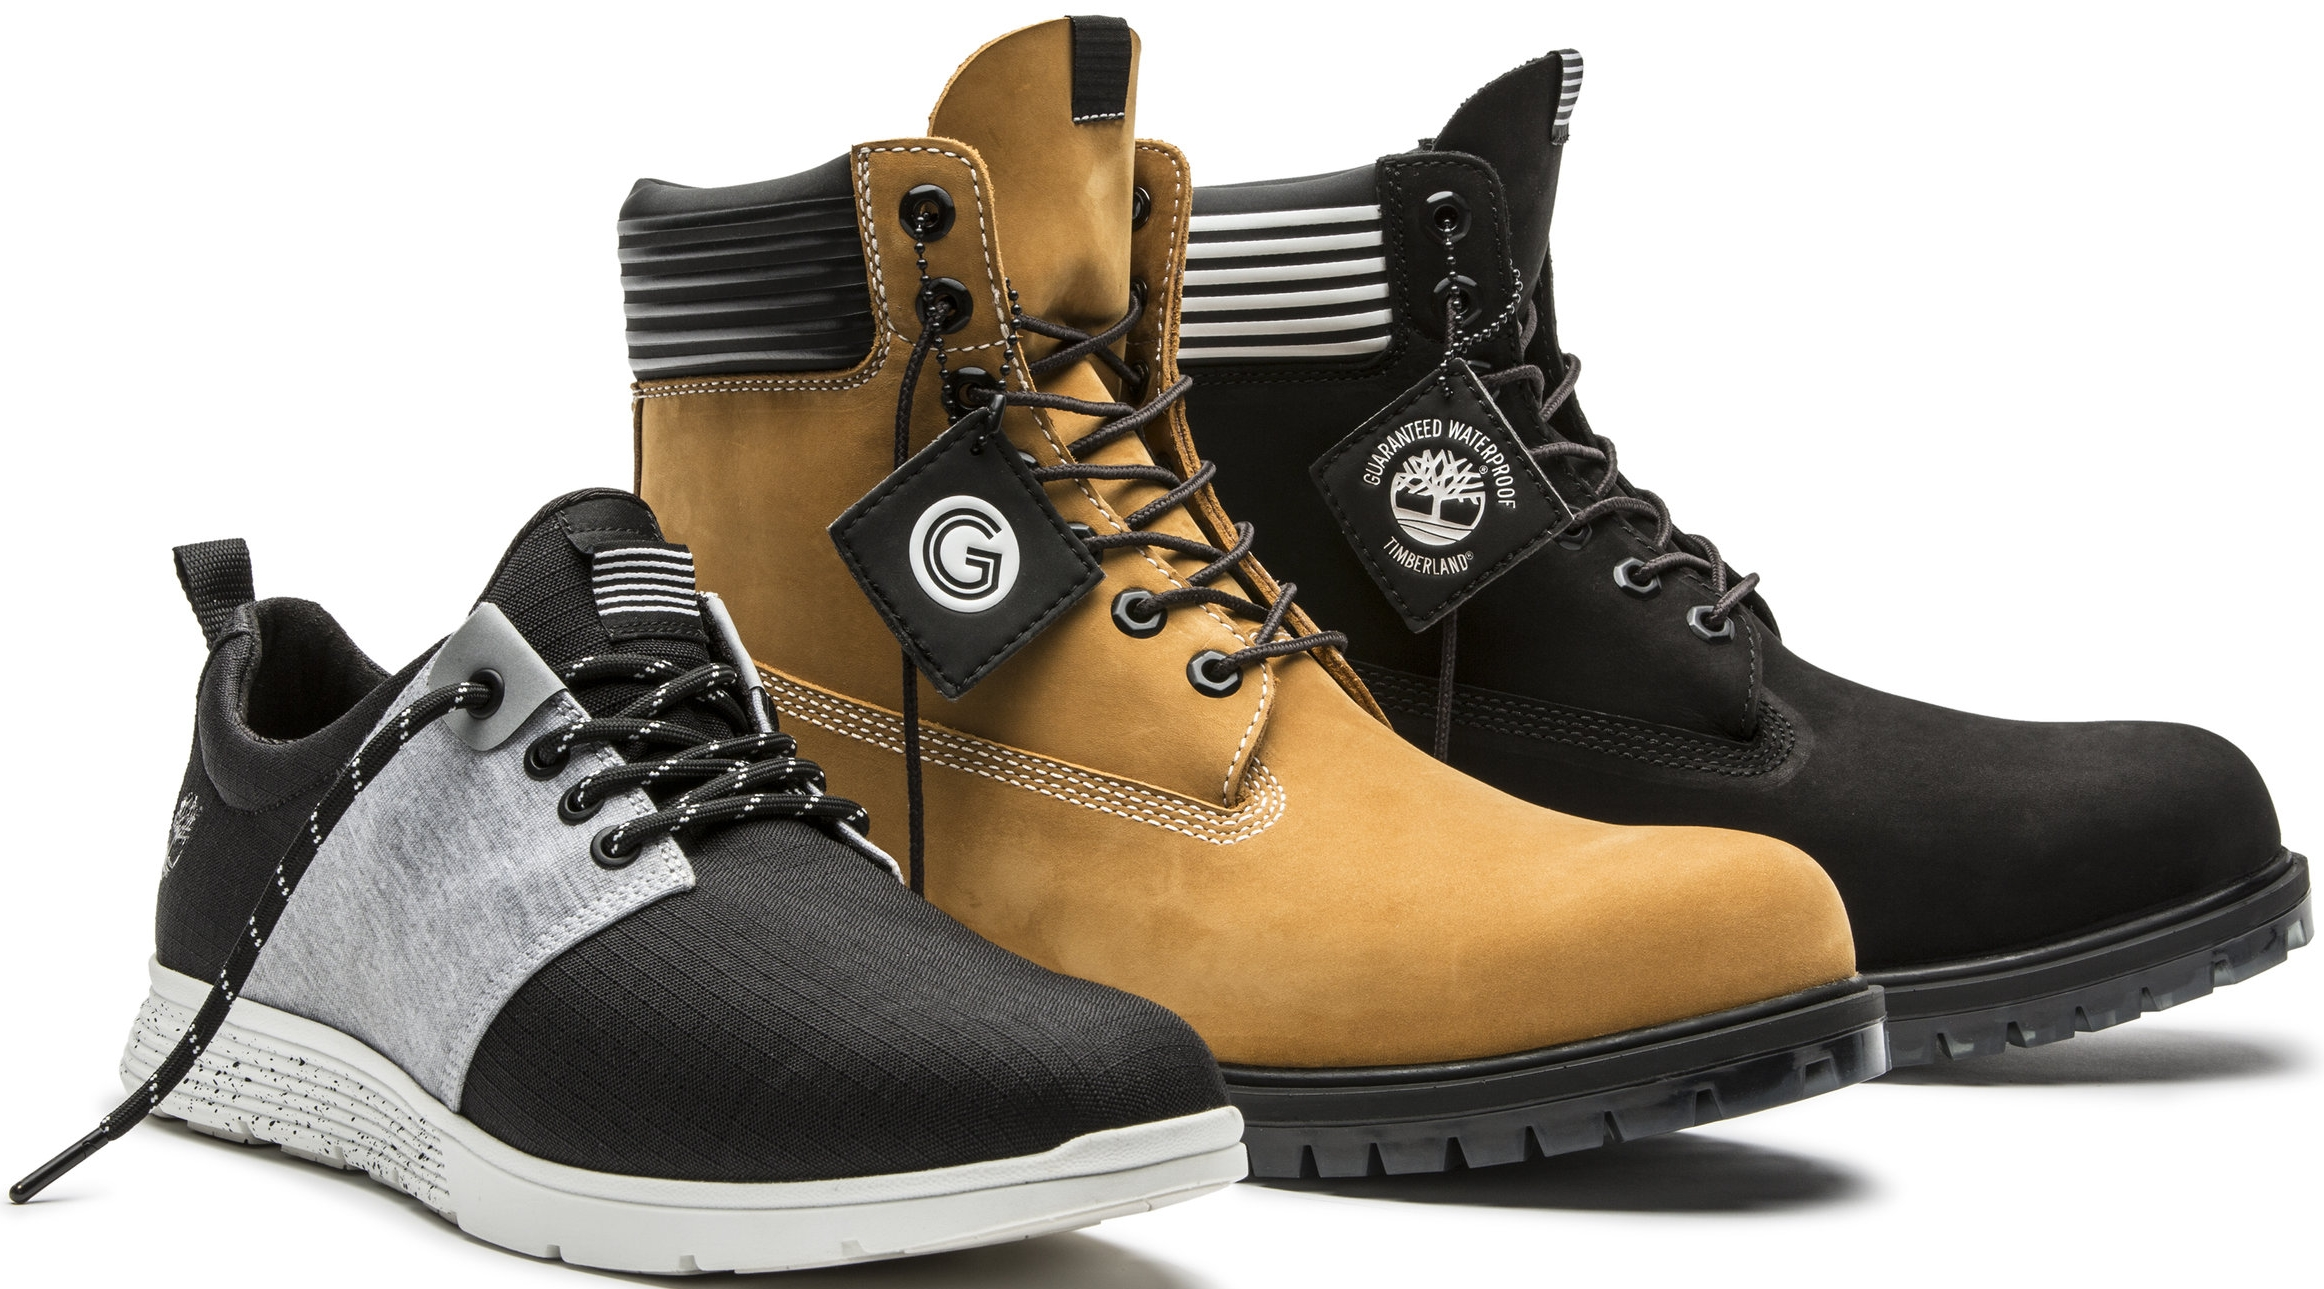 Grungy Gentleman x Timberland, (Boots) $240, (Sneakers) $110